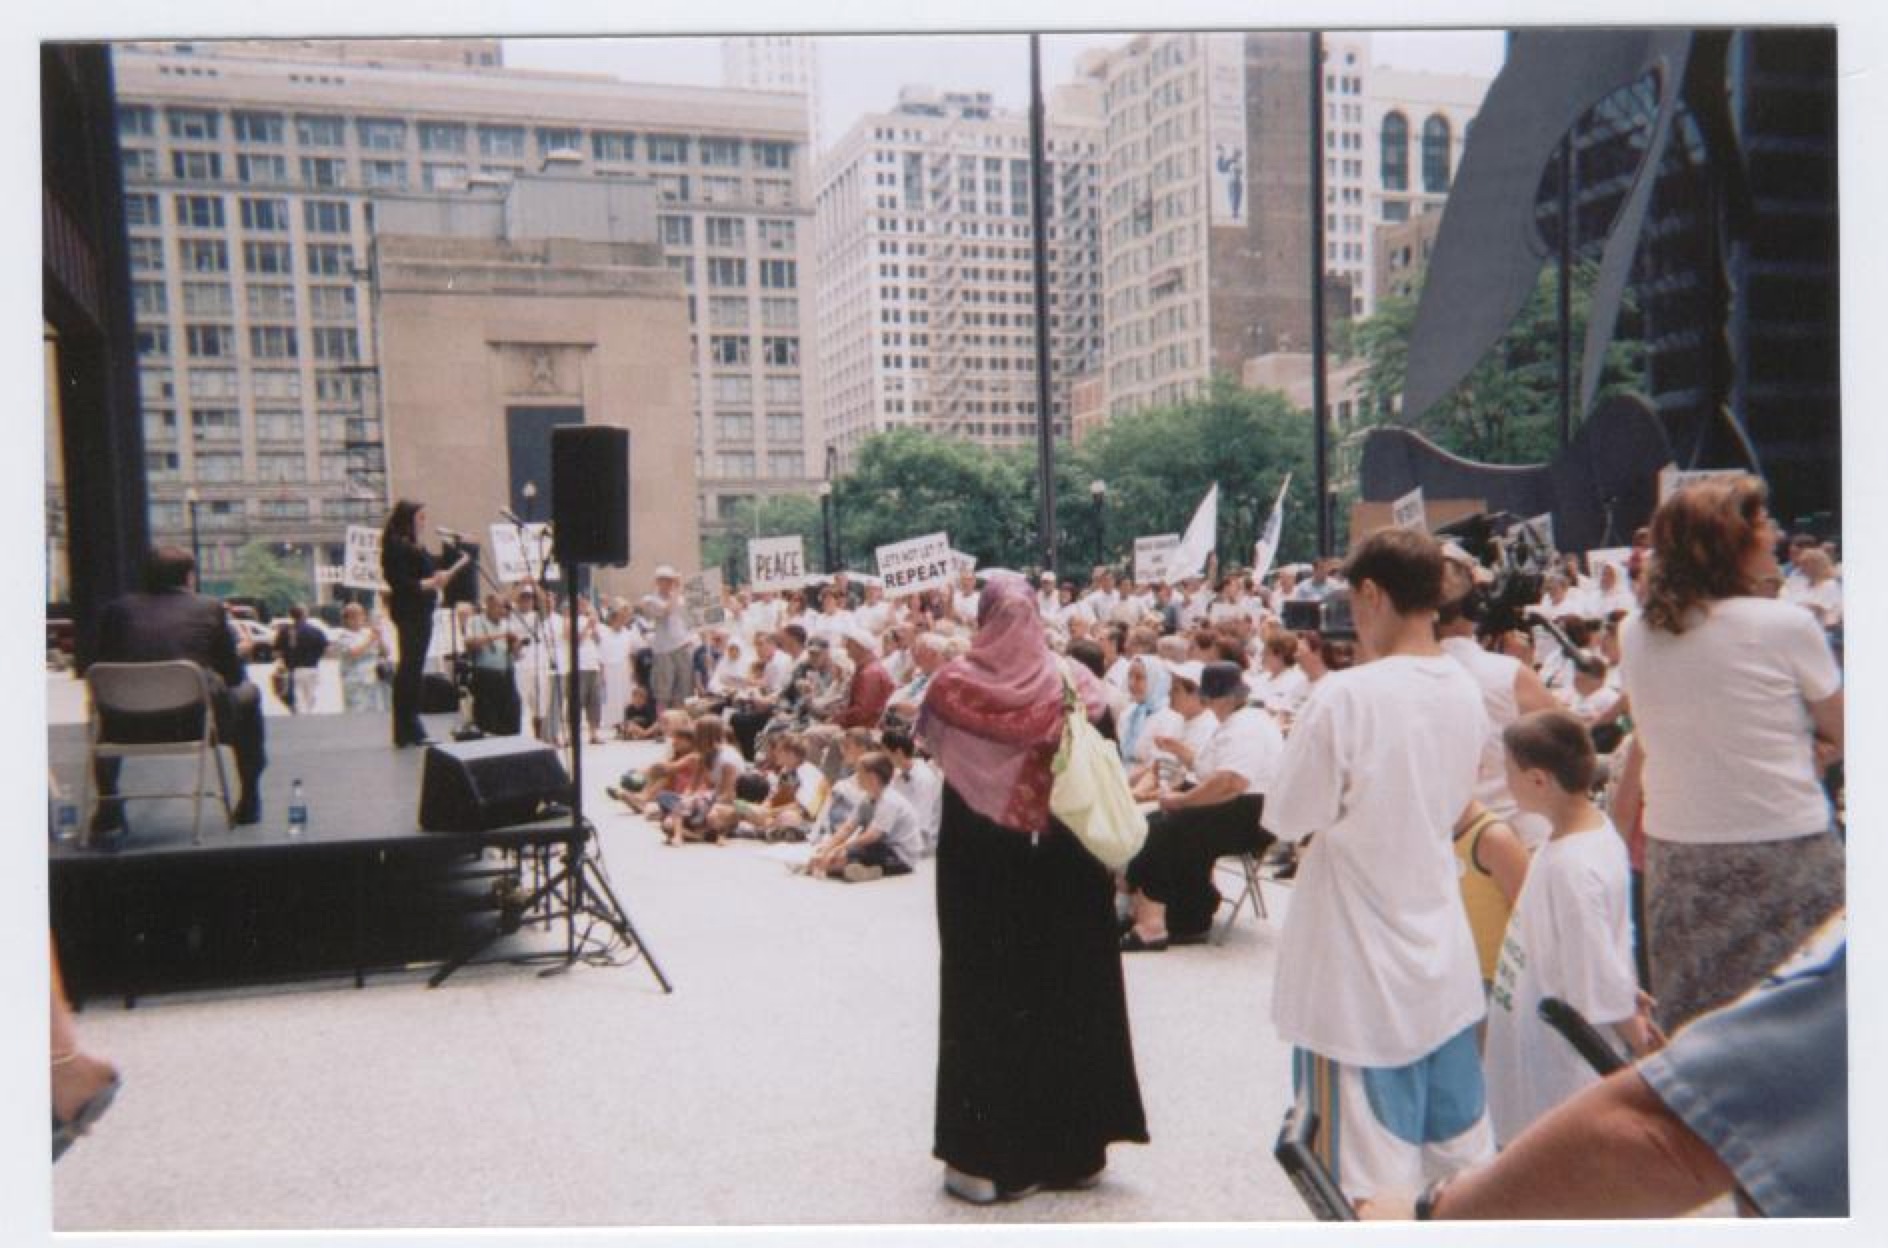 Ten-year memorial of Srebrenica massacres at Daley Plaza in Chicago, 2005. Photo credit: A. Croegaert